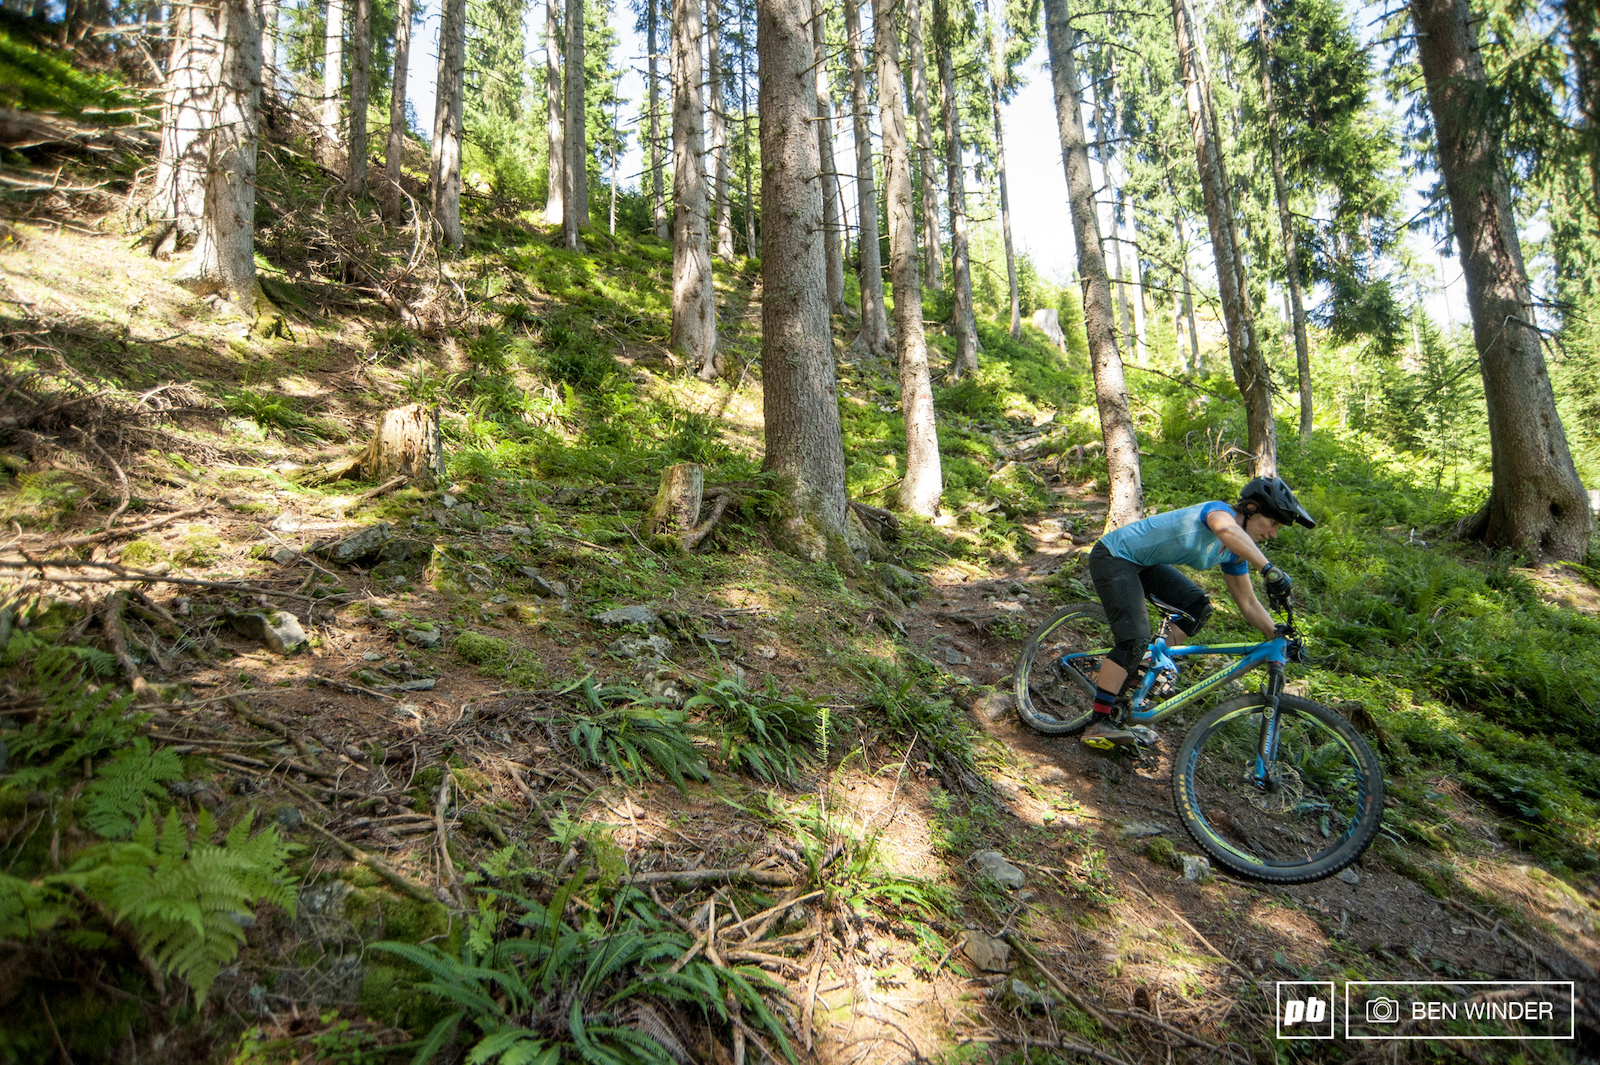 There are plans for more official singletrack in the future.